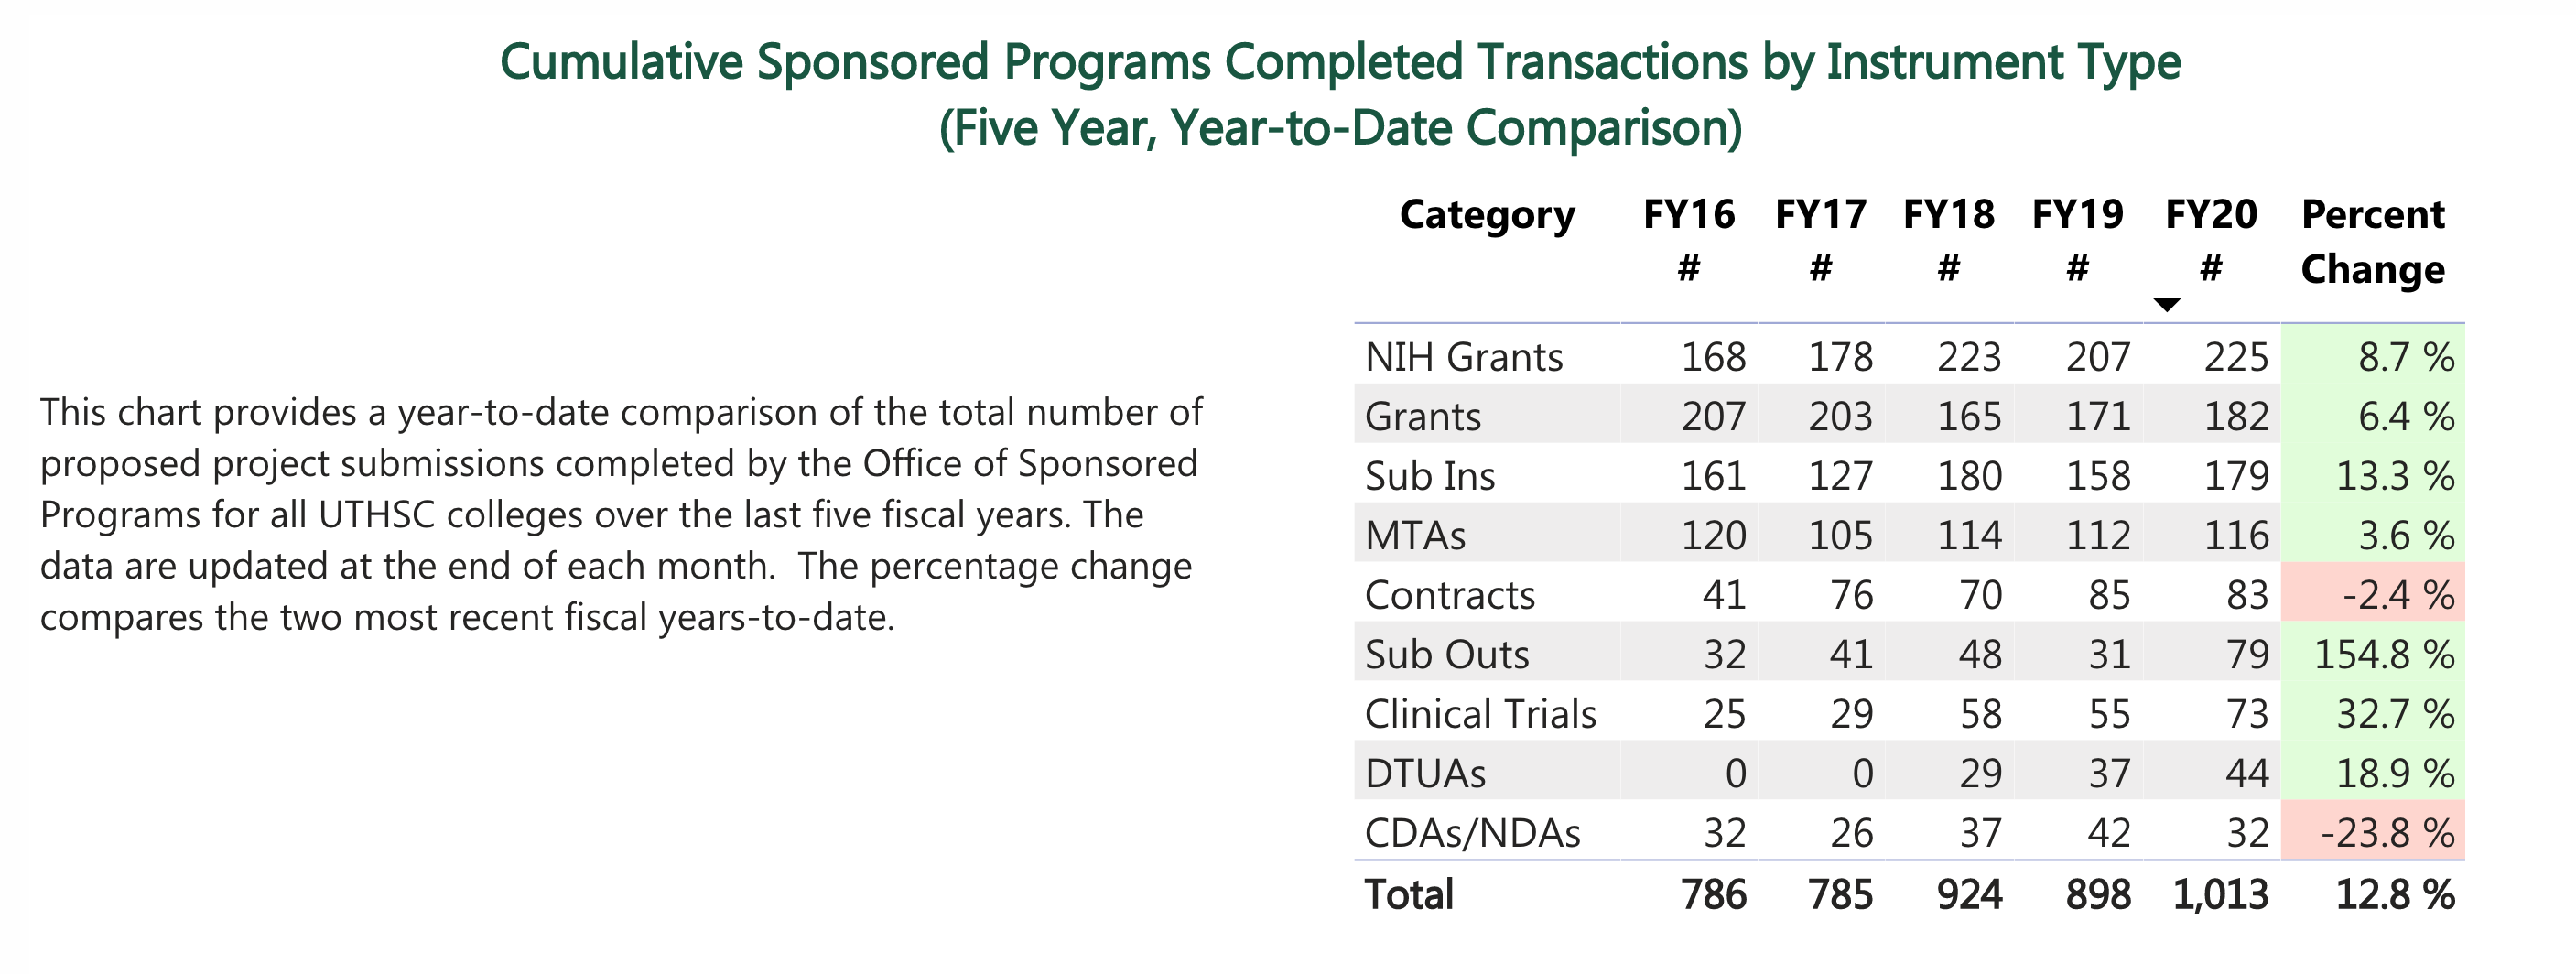 Cumulative Sponsored Programs Completed Transactions by Instrument Type (Five Year, Year-to-Date Comparison)